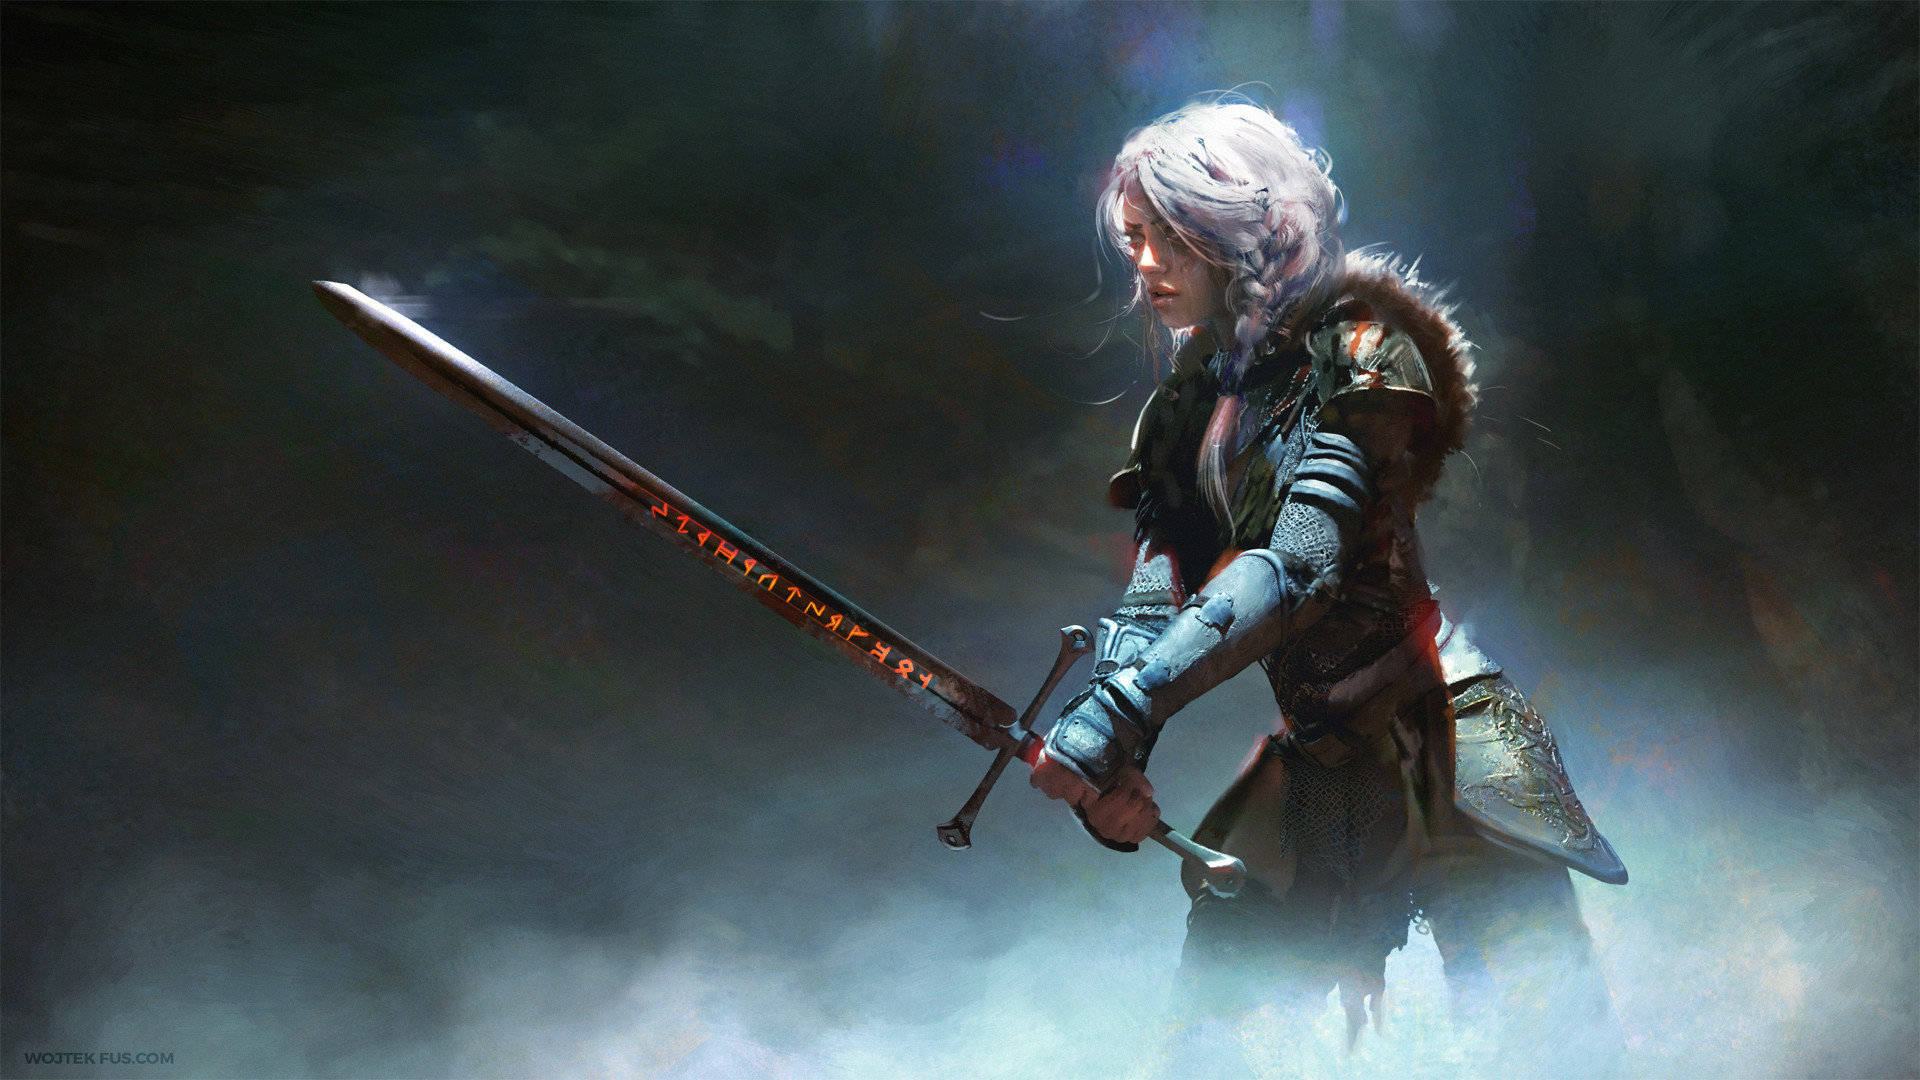 Download Full Hd The Witcher 3 Wild Hunt Desktop Wallpaper Id